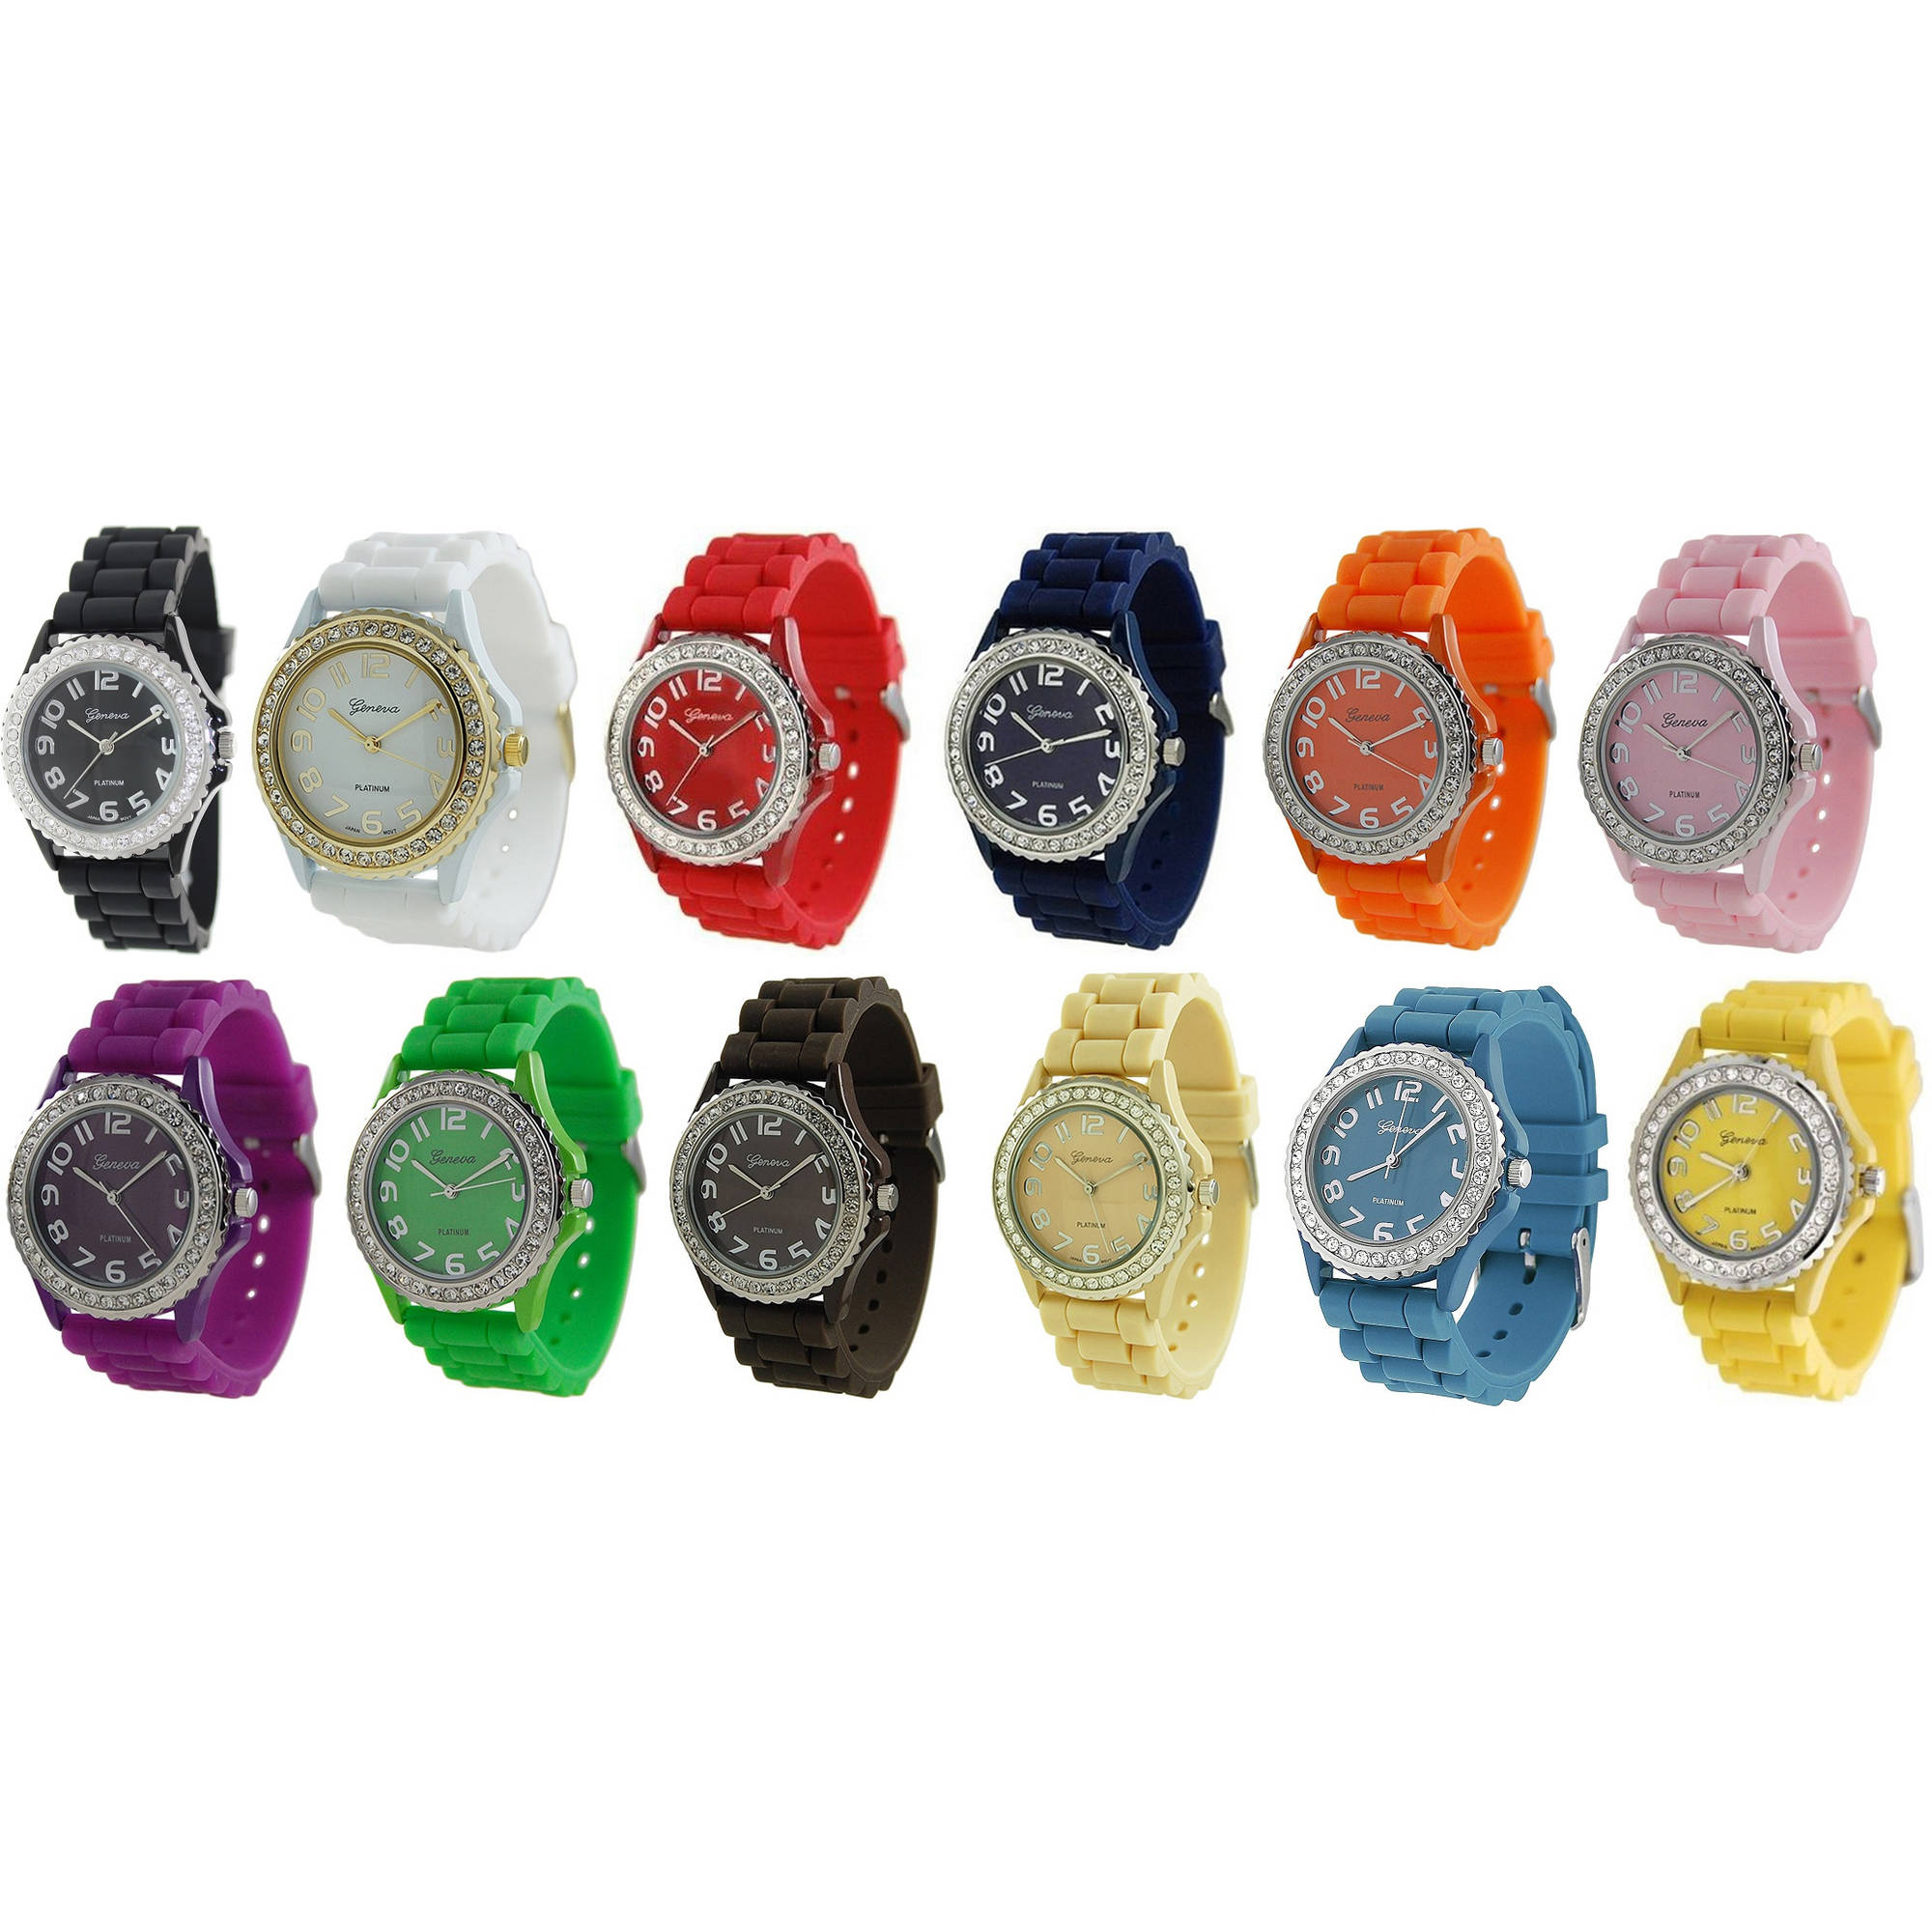 Geneva Rhinestone-Accented Large Face Silicone Watch Set, 12-Piece